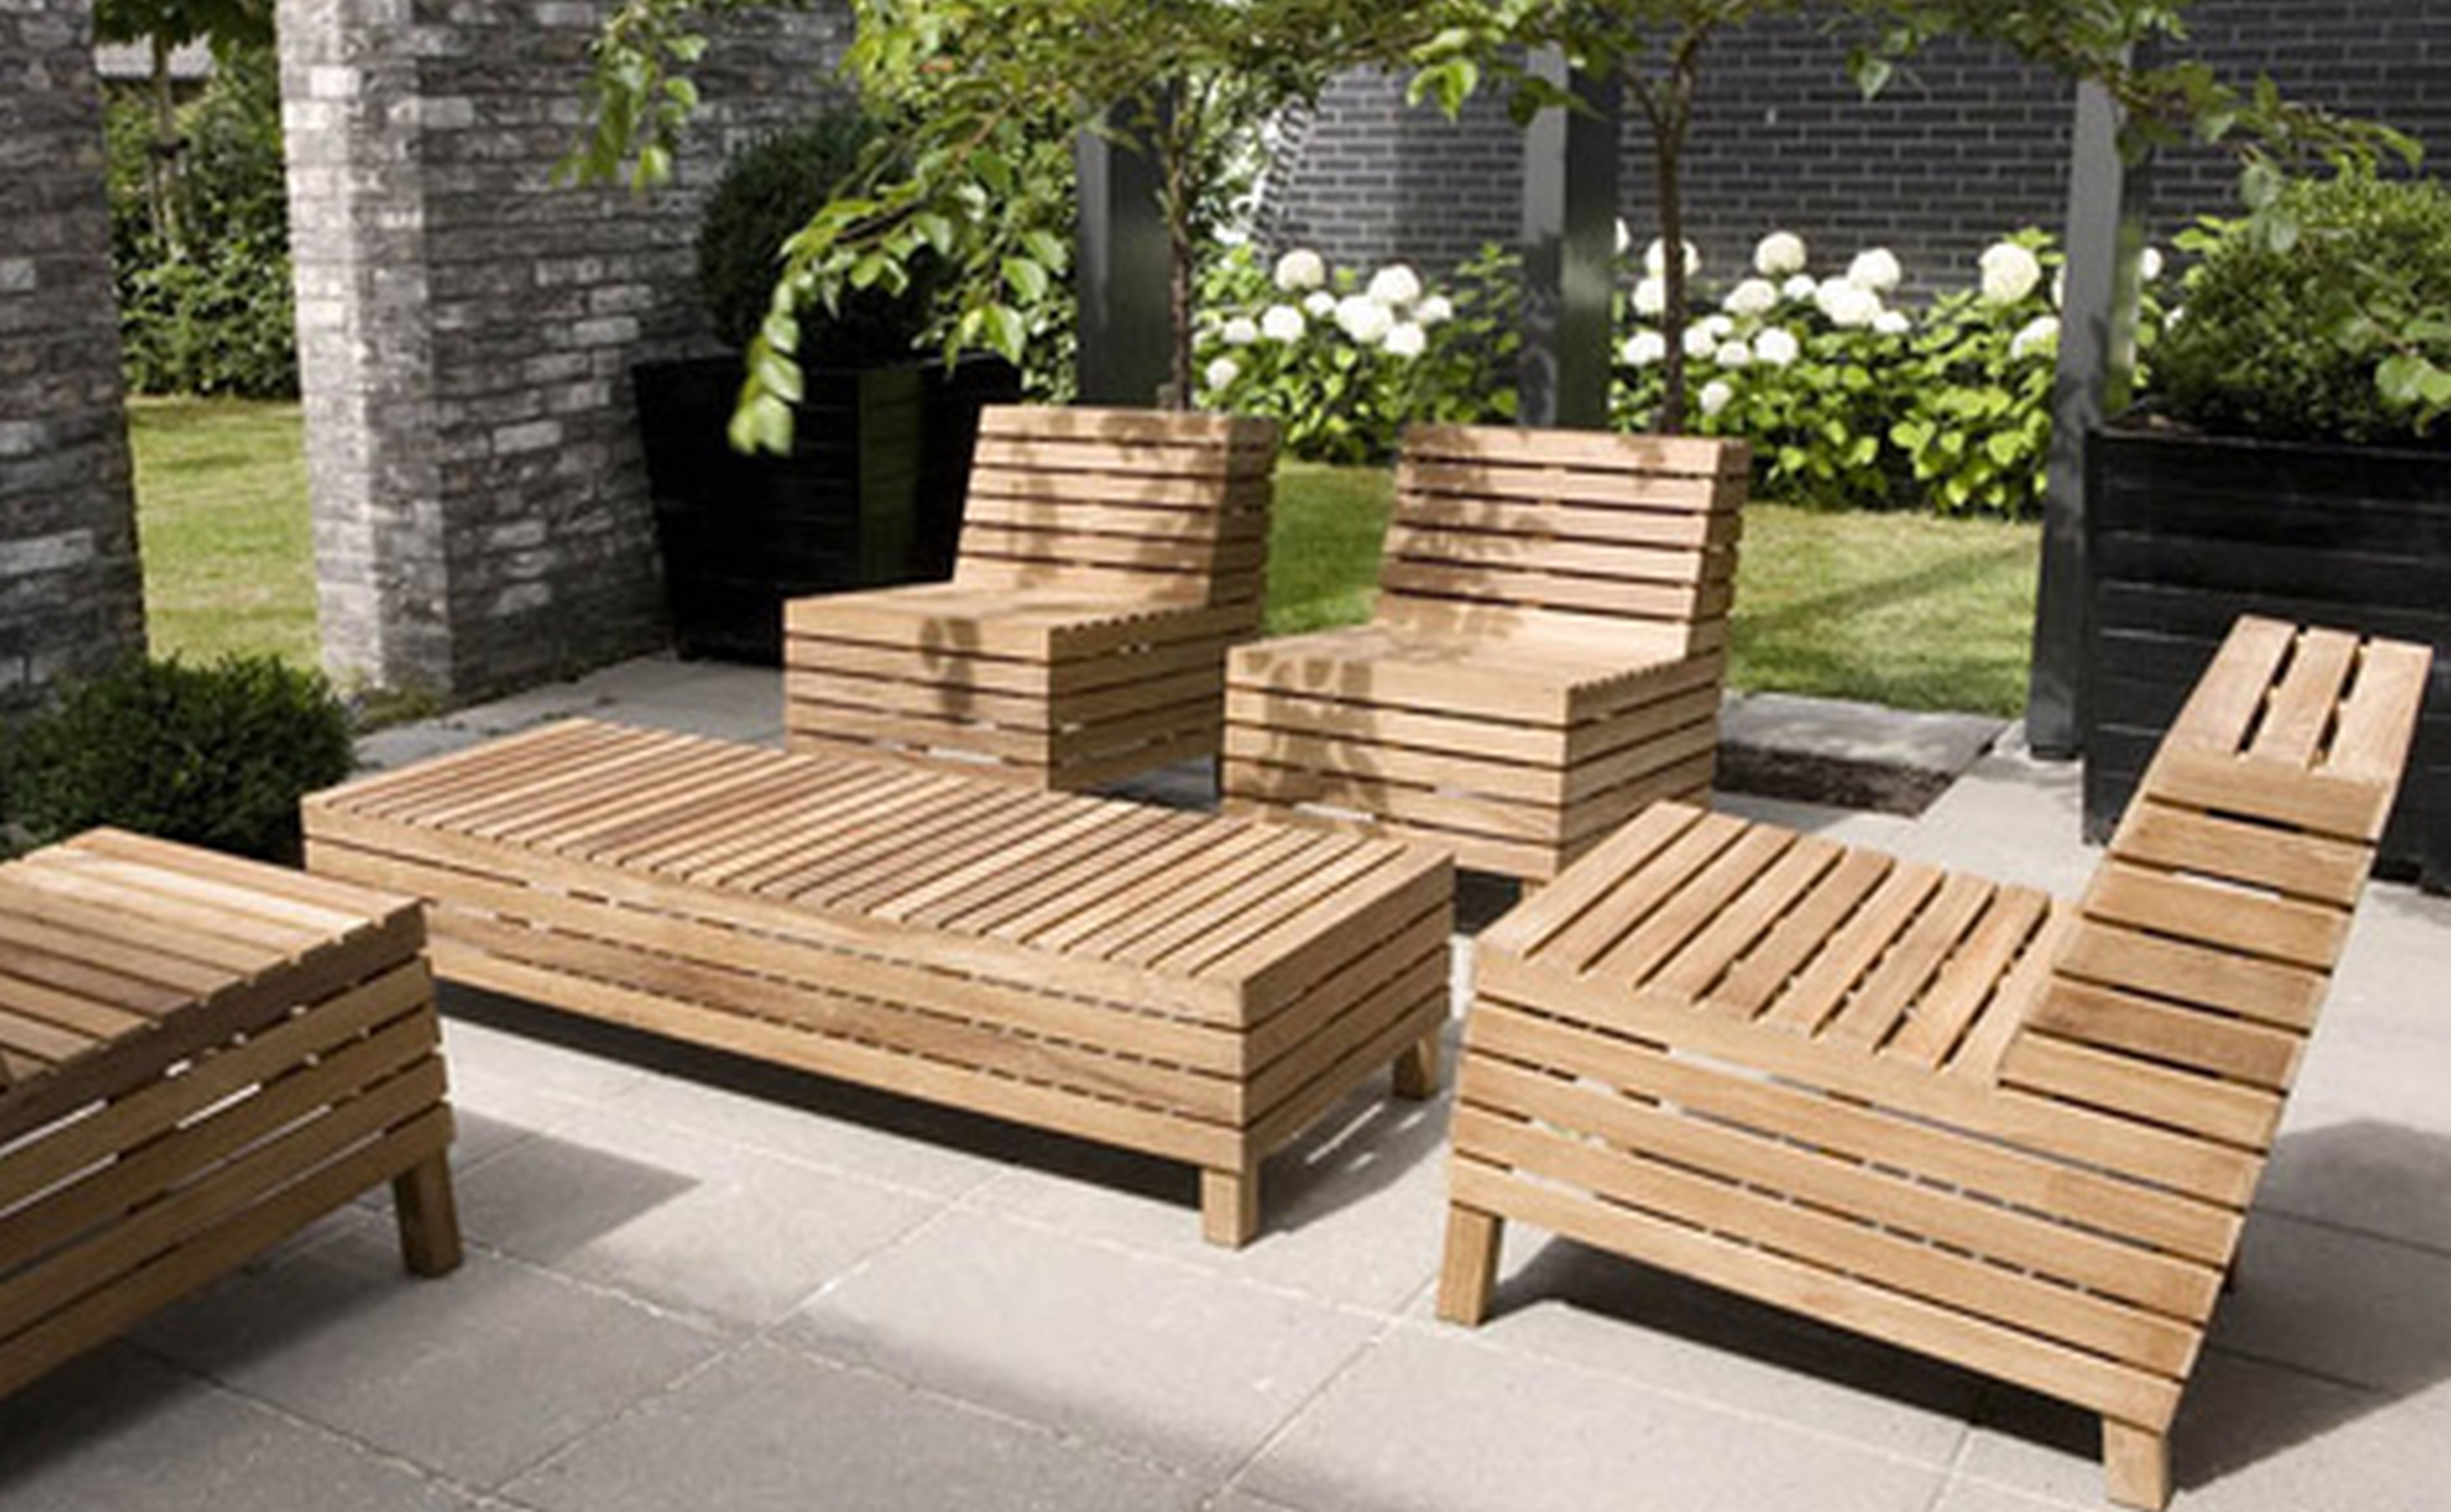 Patio Furniture Near Me — Teak Furnitures : High Demand Of Teak Within Famous Outdoor Sofas And Chairs (View 3 of 20)